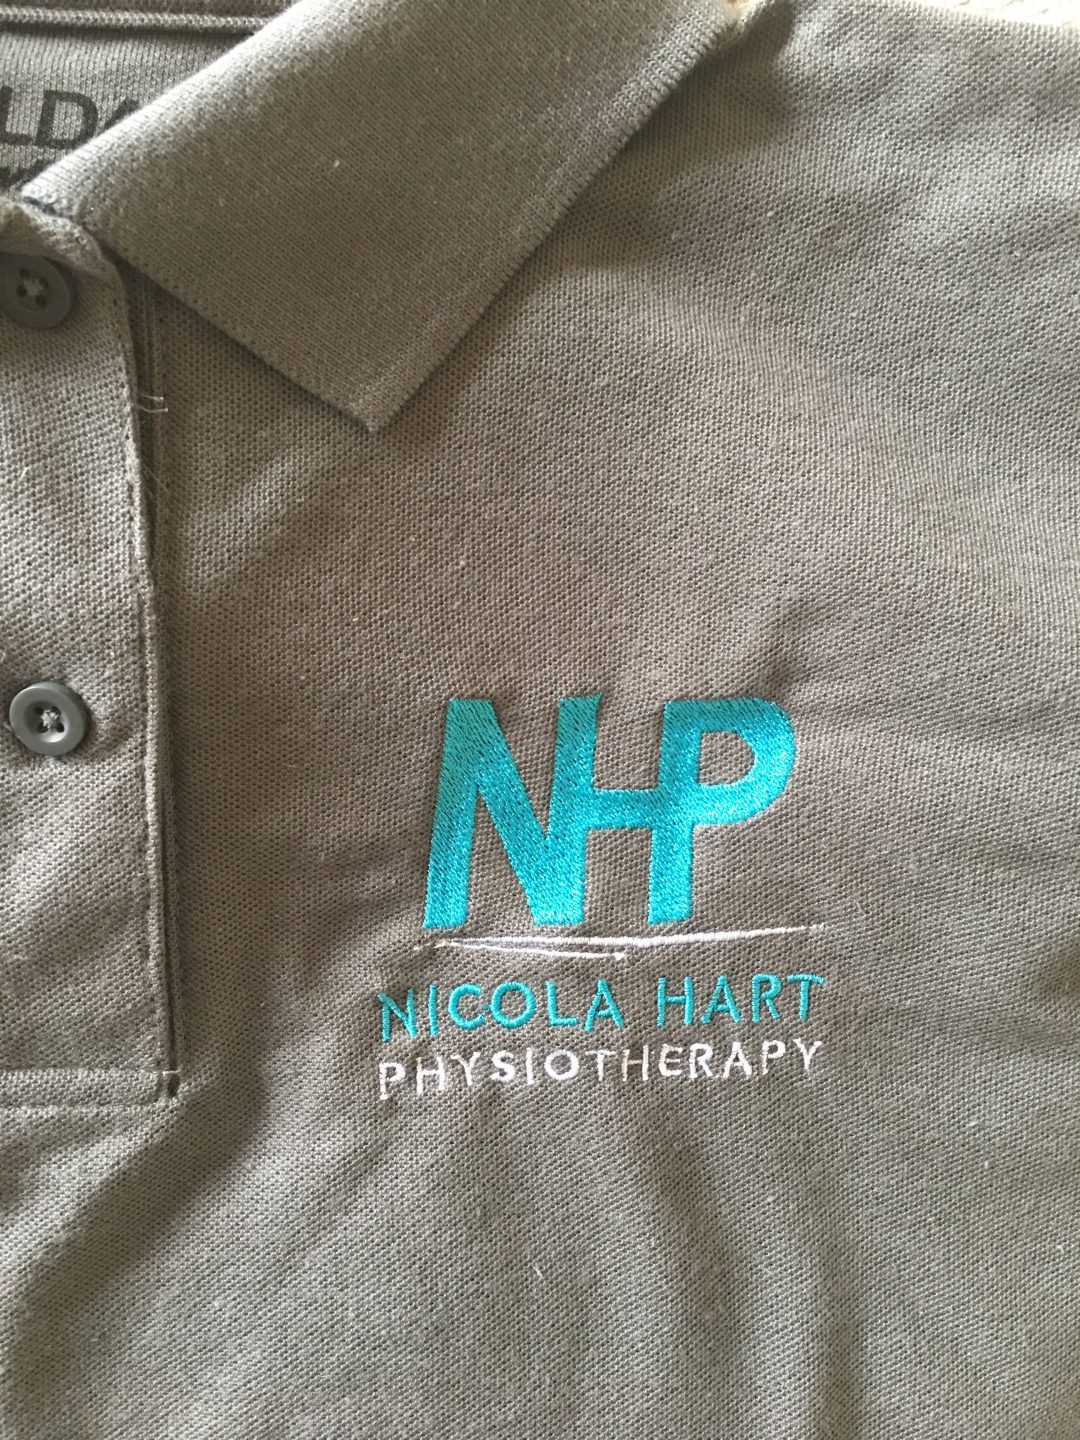 NP Physiotherapy Embroidery Essex